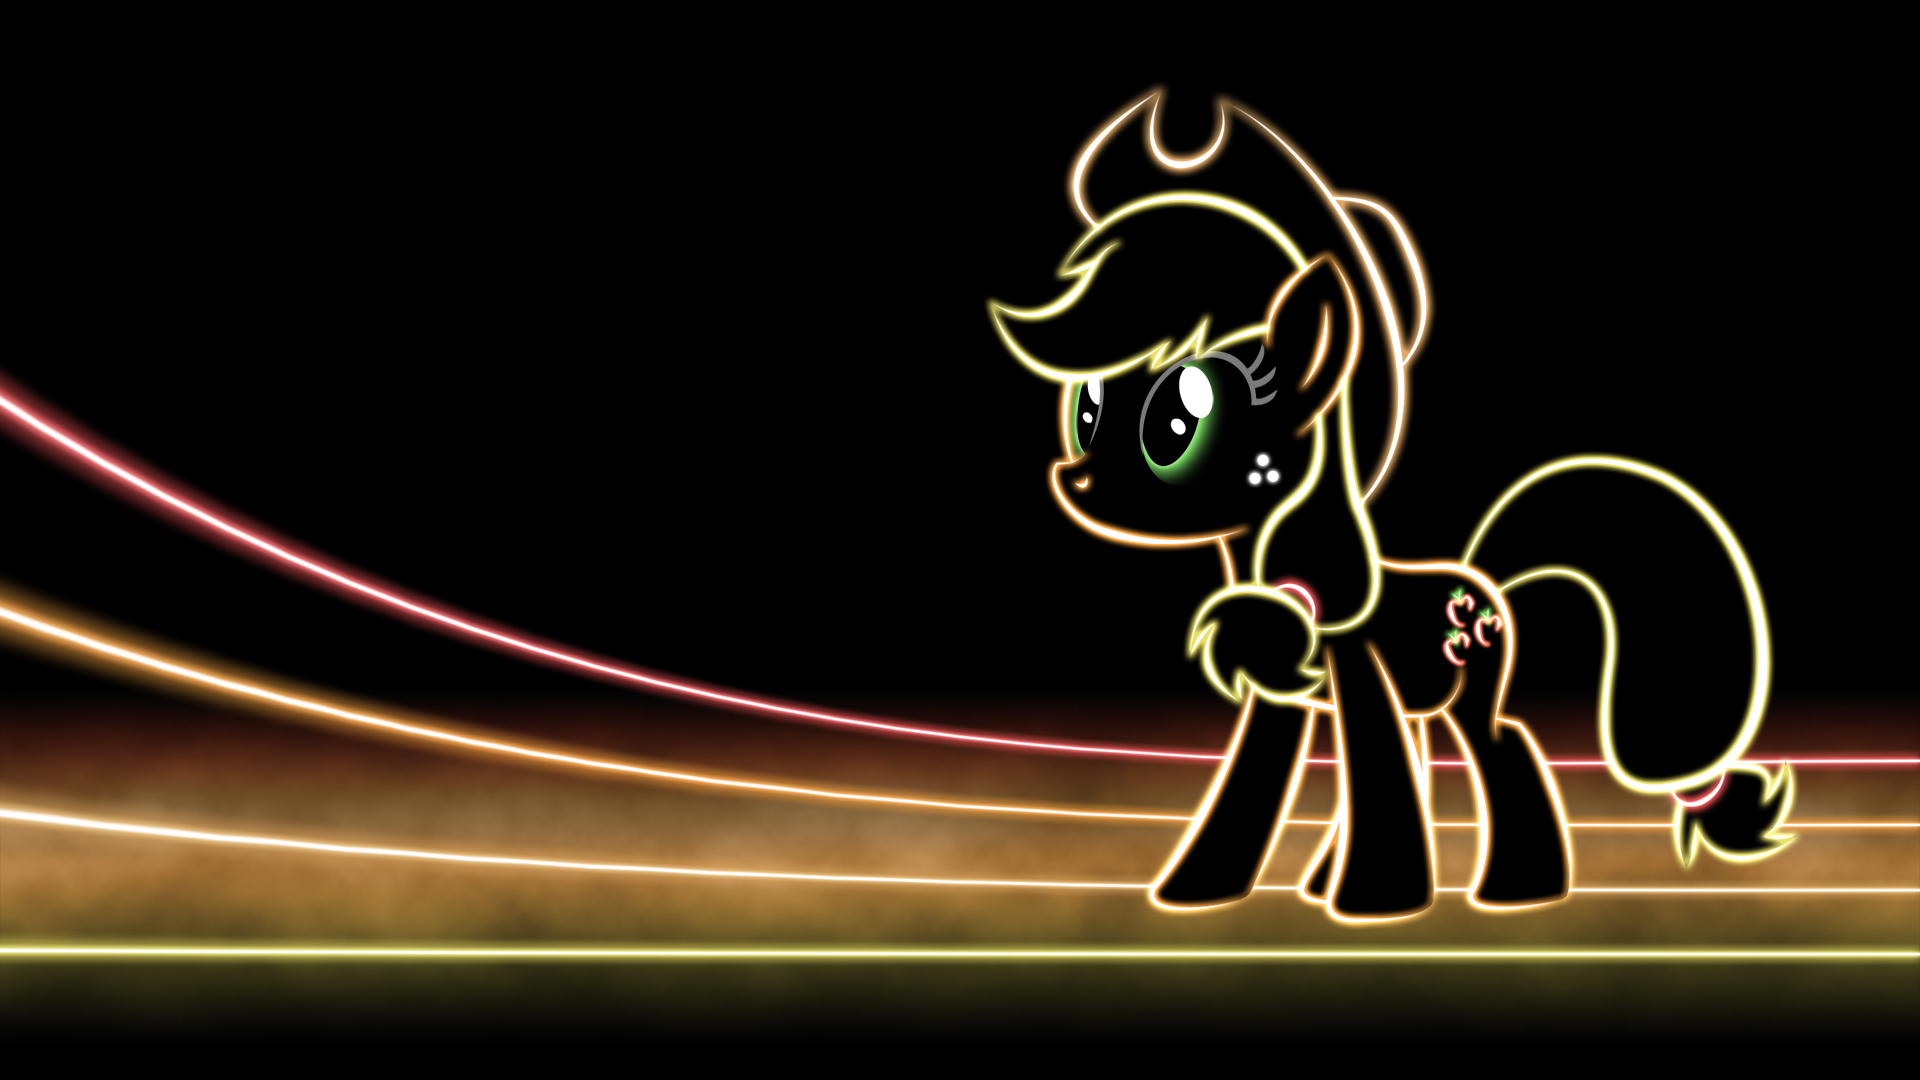 mlp glow wallpapers my little pony friendship is magic